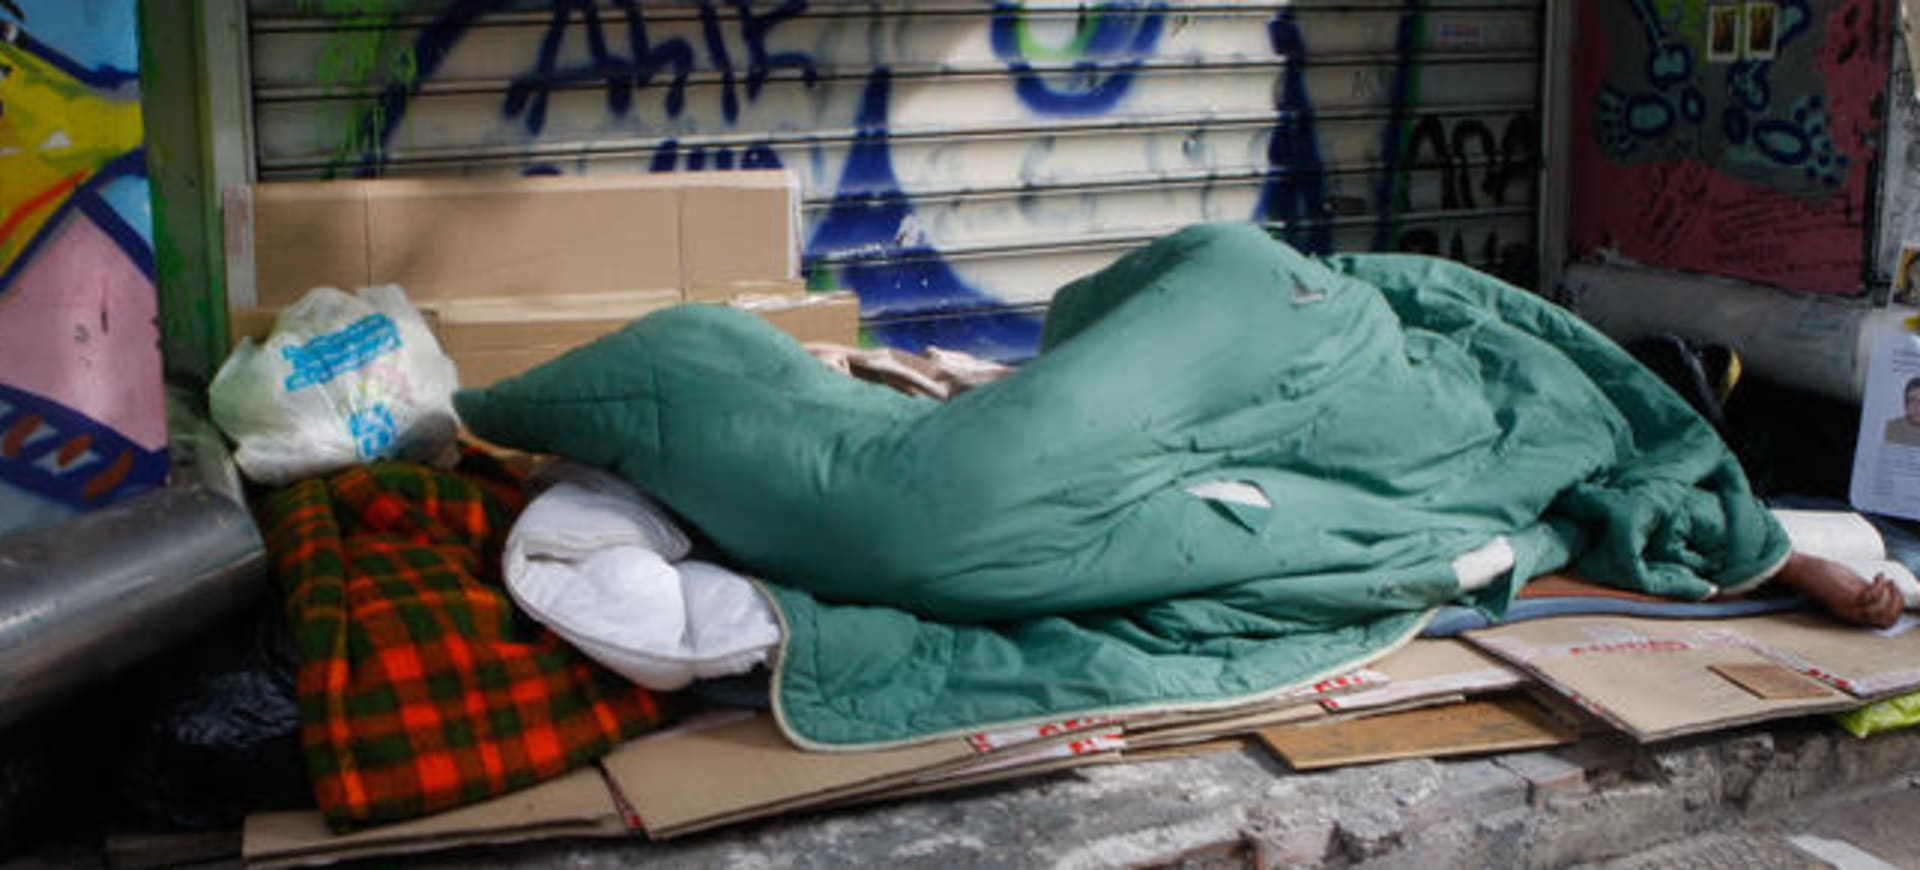 Christian mission charities decry 'scandalous' rise of deaths of the homeless